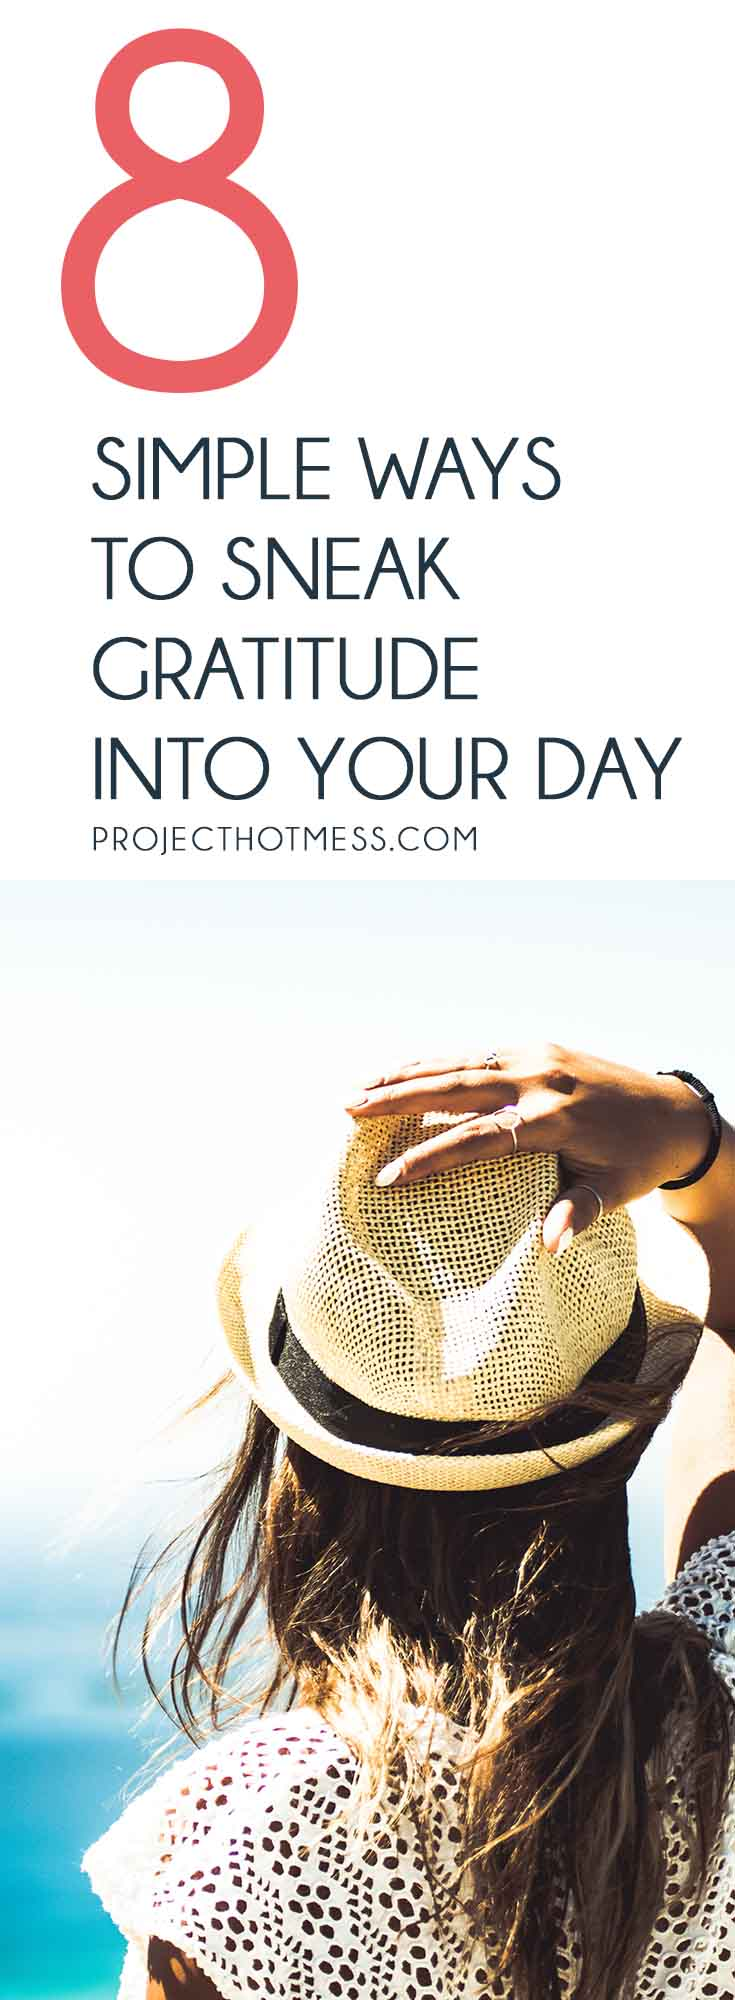 The thought of adding yet another thing to your day can be too much. Which is why it's nice to be able to sneak gratitude into your day in these easy ways.